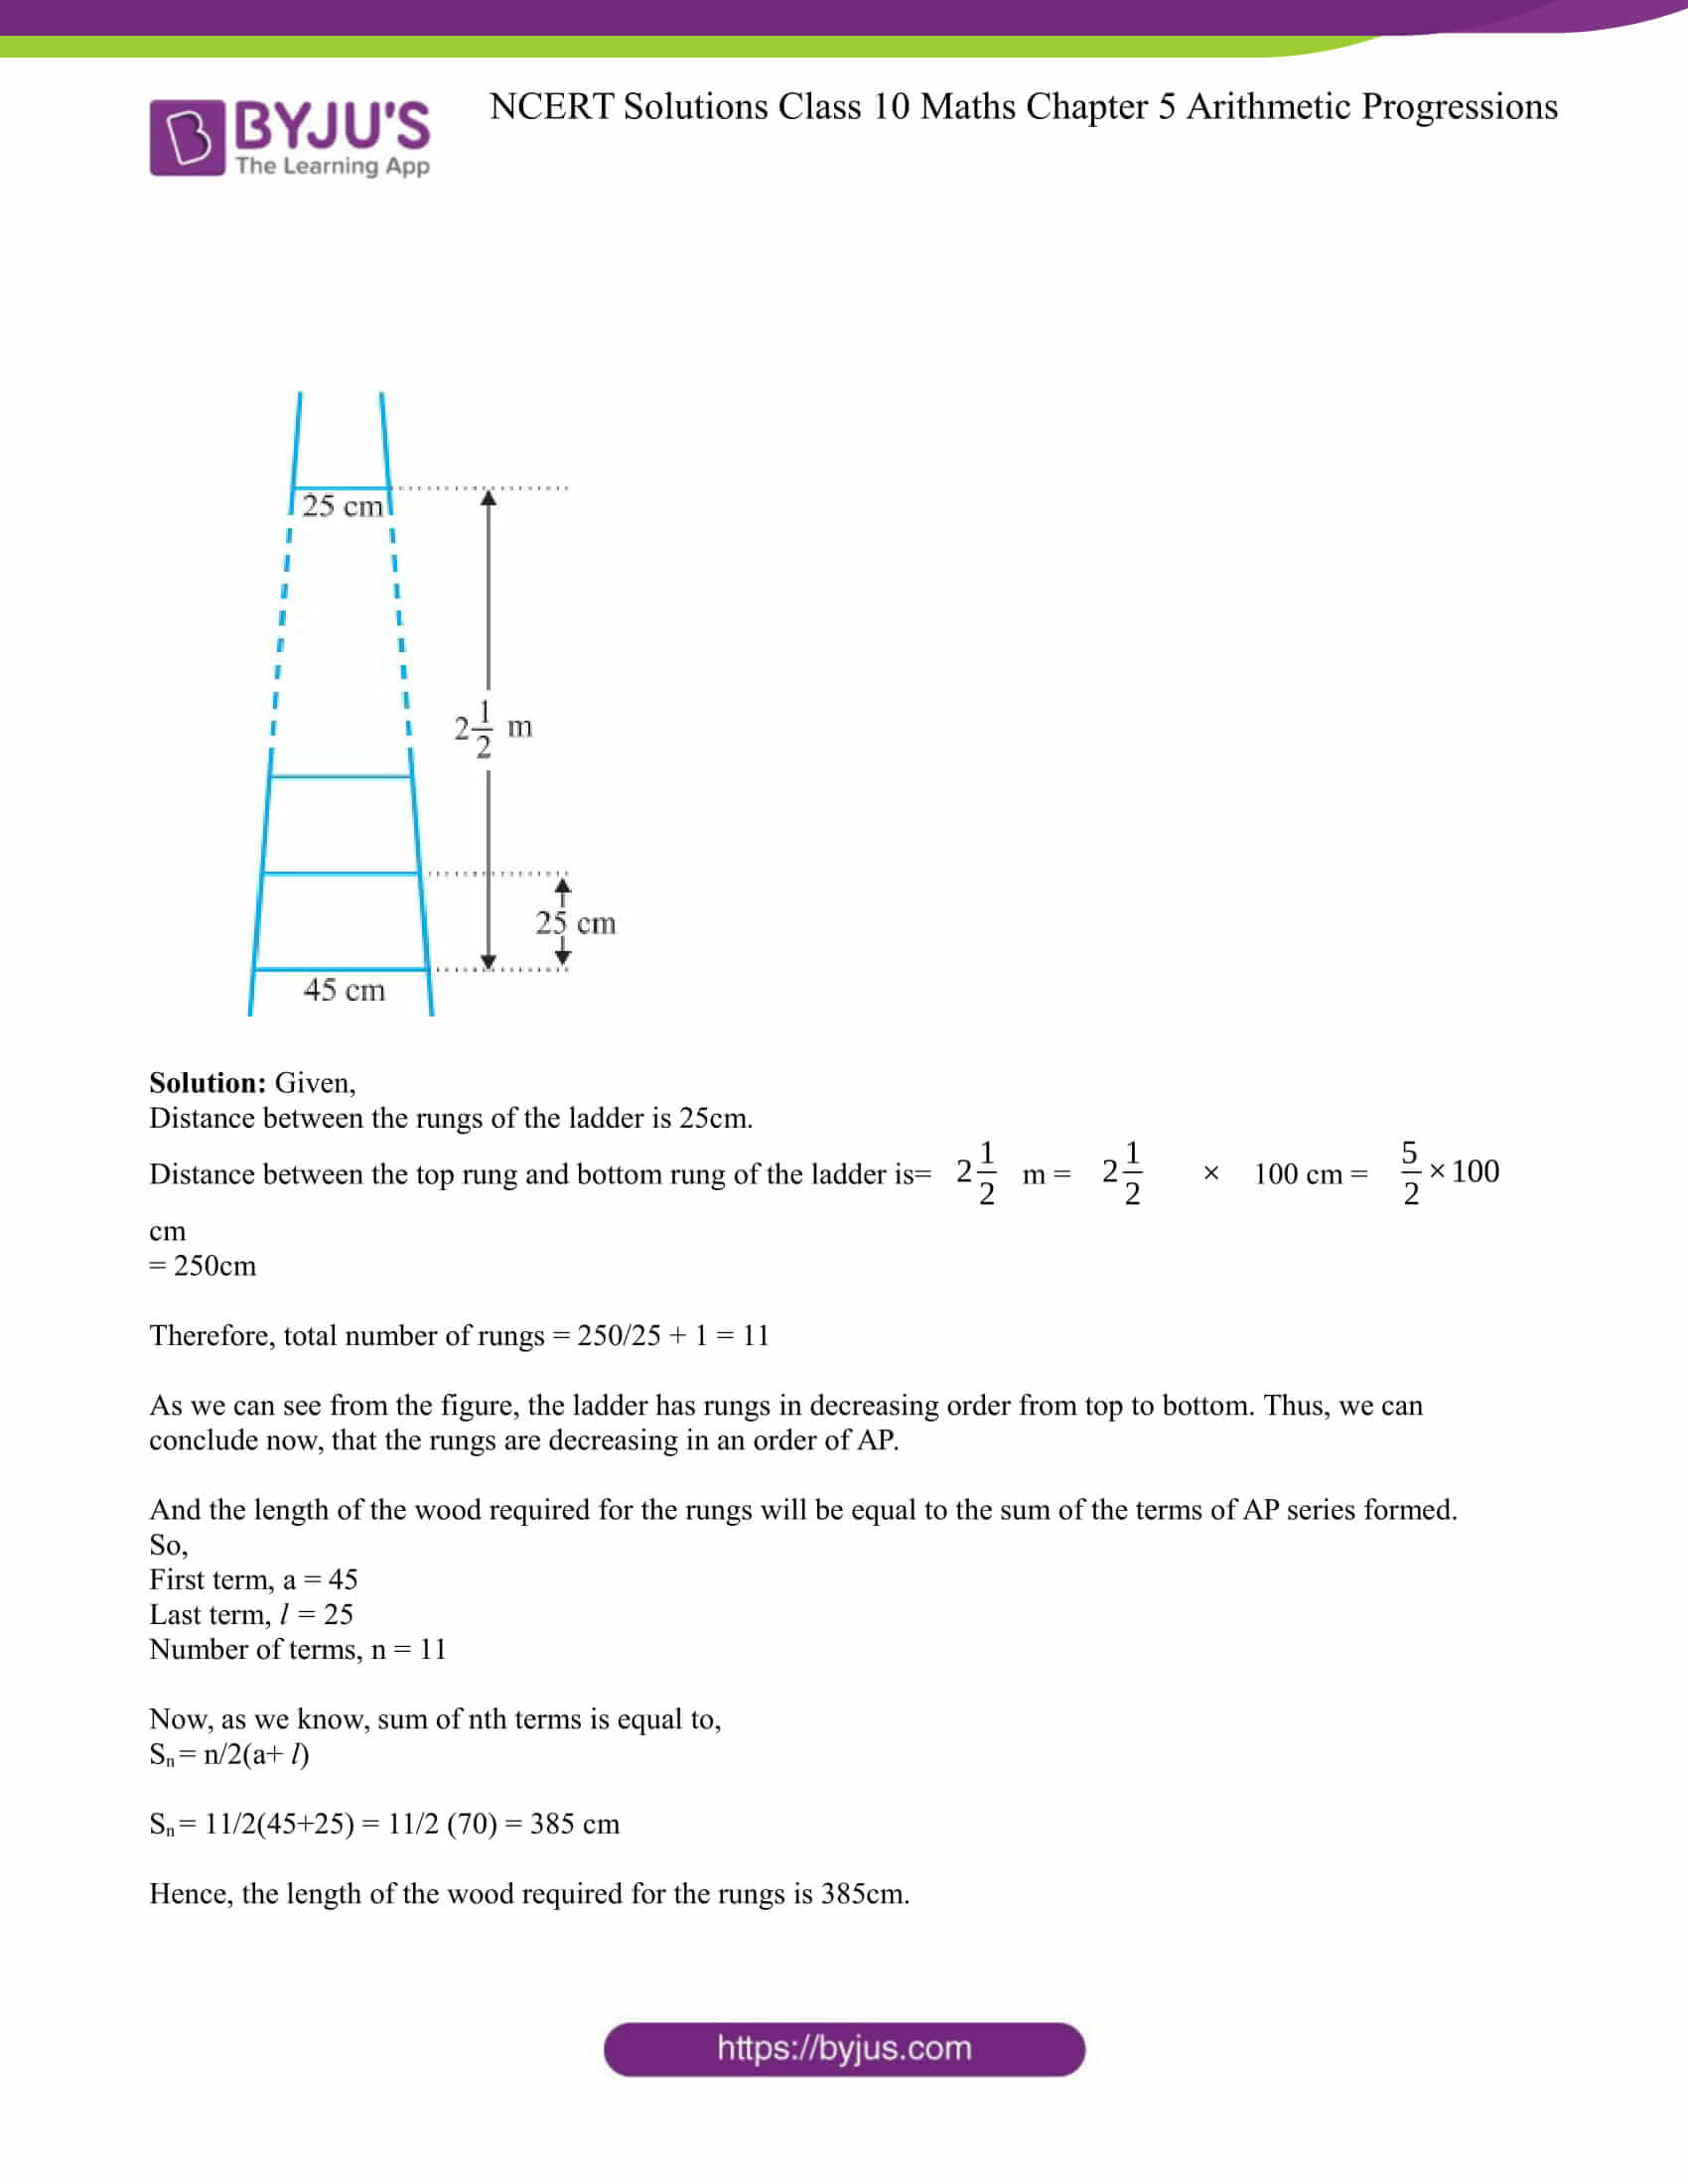 NCERT Solution for CBSE class 10 Maths Chapter 5 Arithmetic Progressions Excercise 5.3 Part 20